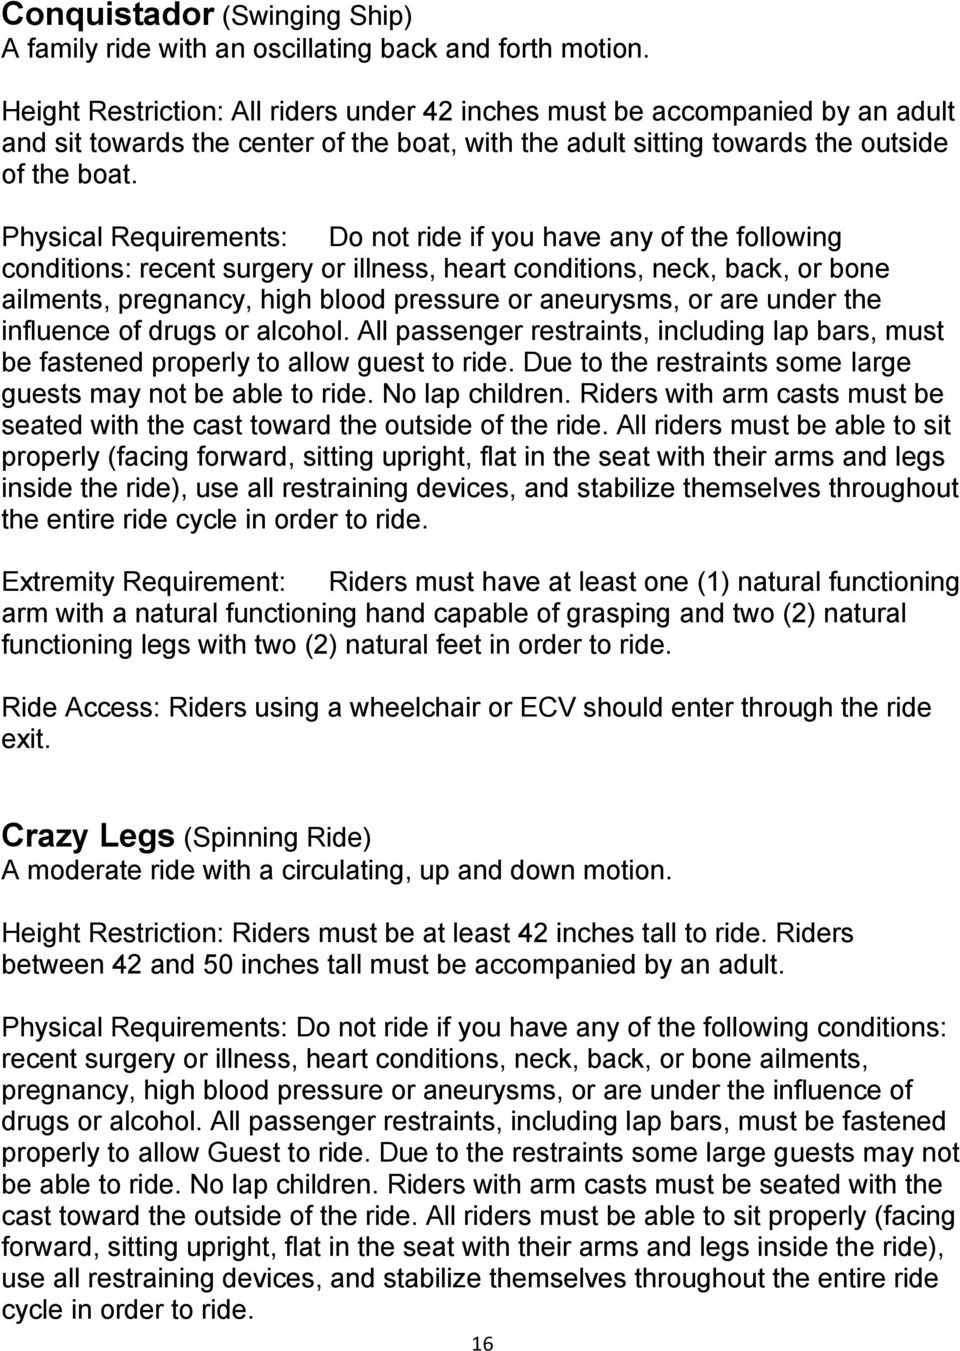 Physical Requirements: Do not ride if you have any of the following conditions: recent surgery or illness, heart conditions, neck, back, or bone ailments, pregnancy, high blood pressure or aneurysms,